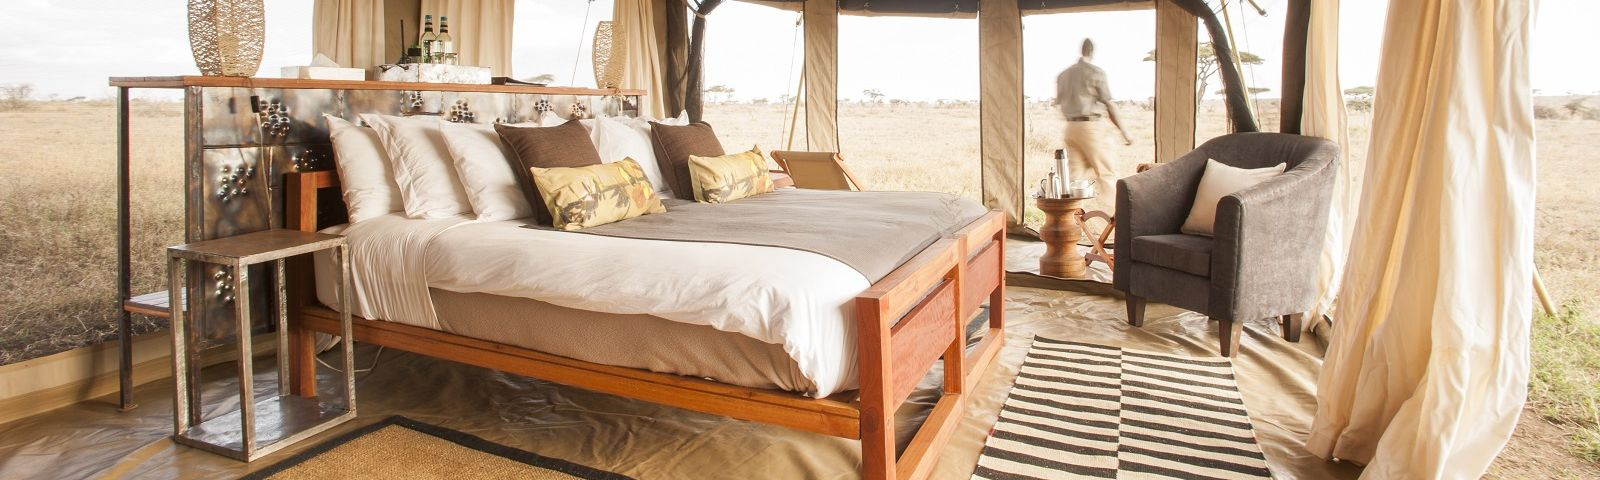 Enchanting Travels - Tanzania Tours - Serengeti (Central) Hotel - Namiri Plains - Guest Bedroom with Staff